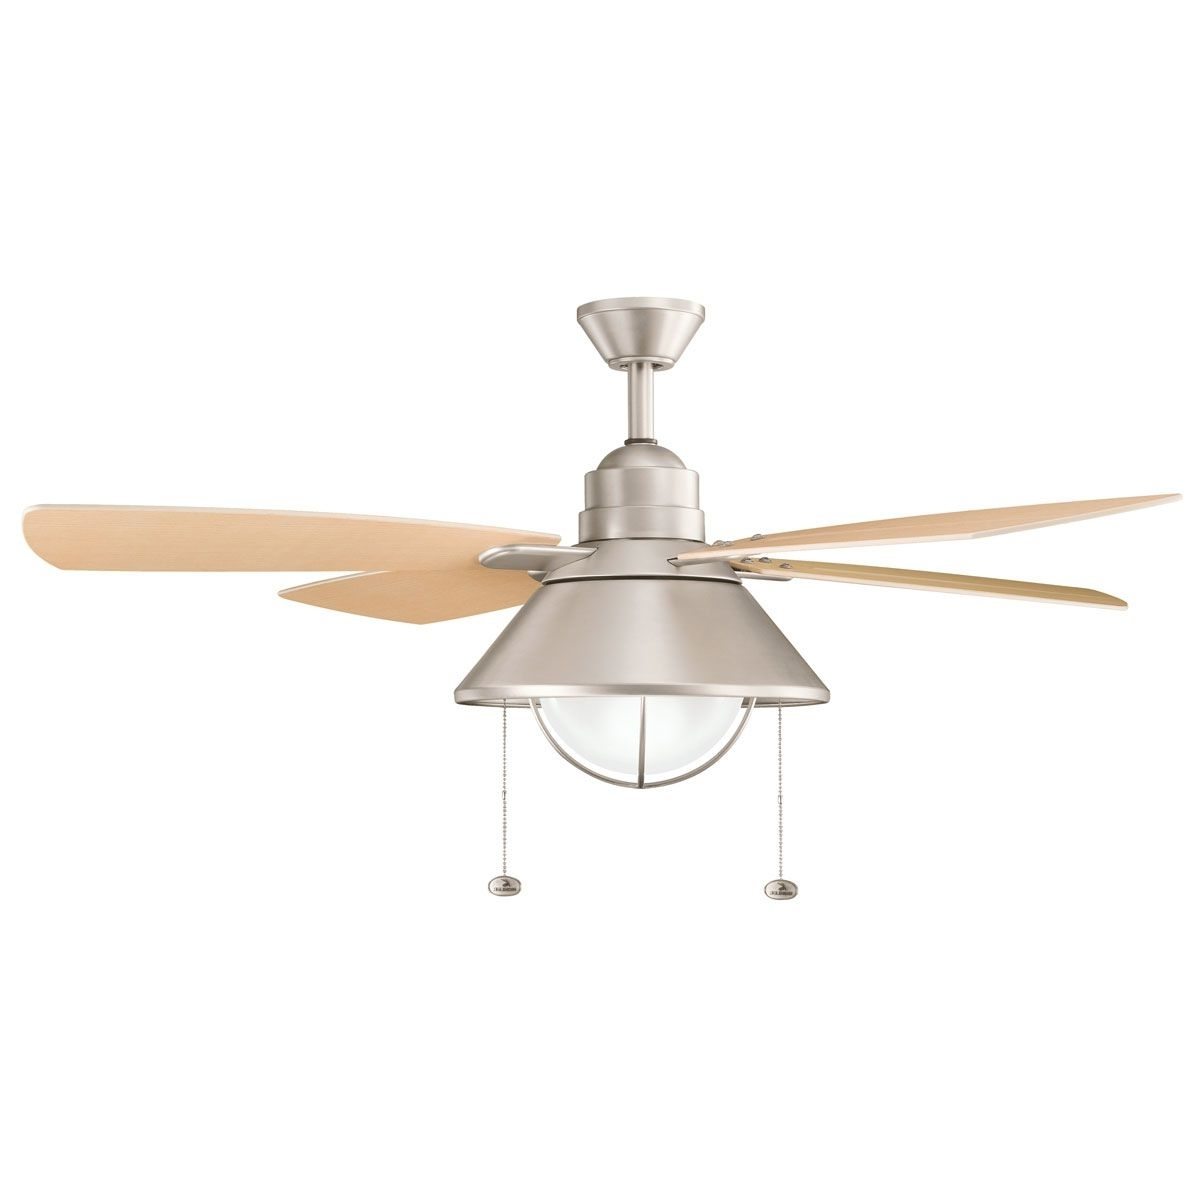 Ideas For The Pertaining To Outdoor Ceiling Fans With Light Kit (View 14 of 20)